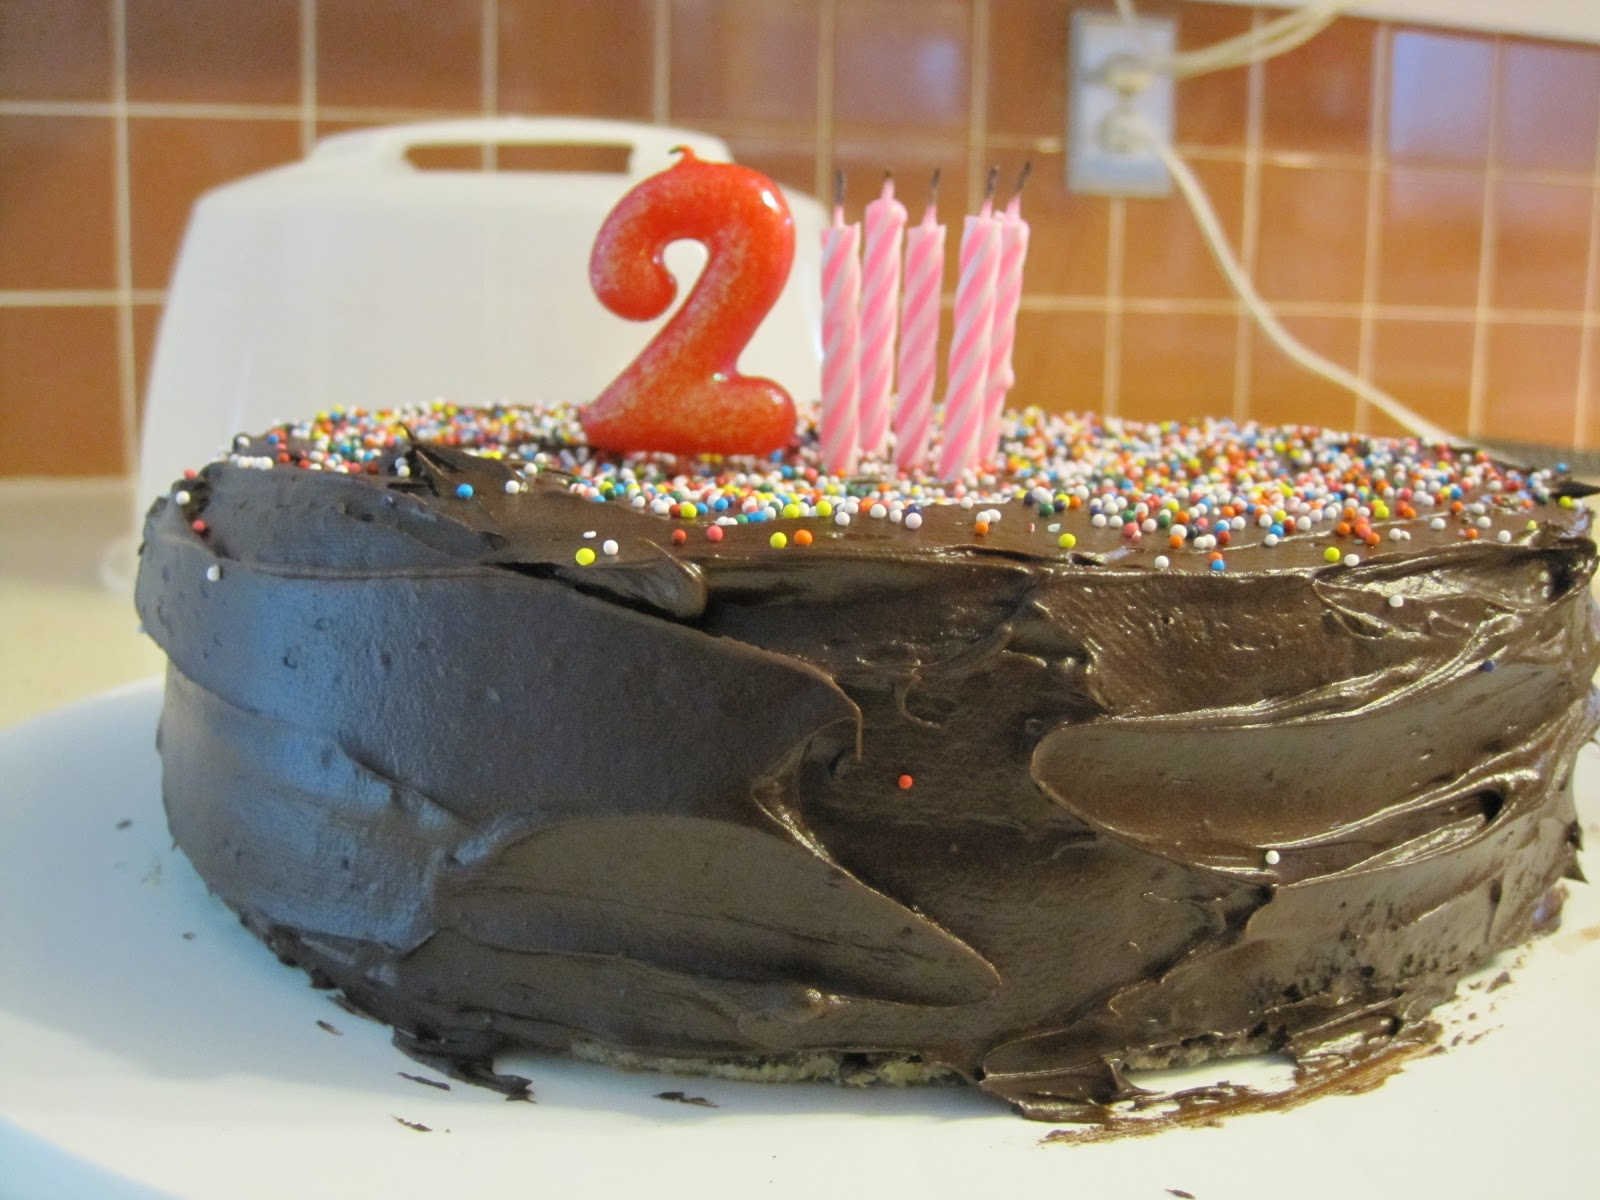 gluten free the tasty way cooking and living gluten free for real on free birthday cake for husband